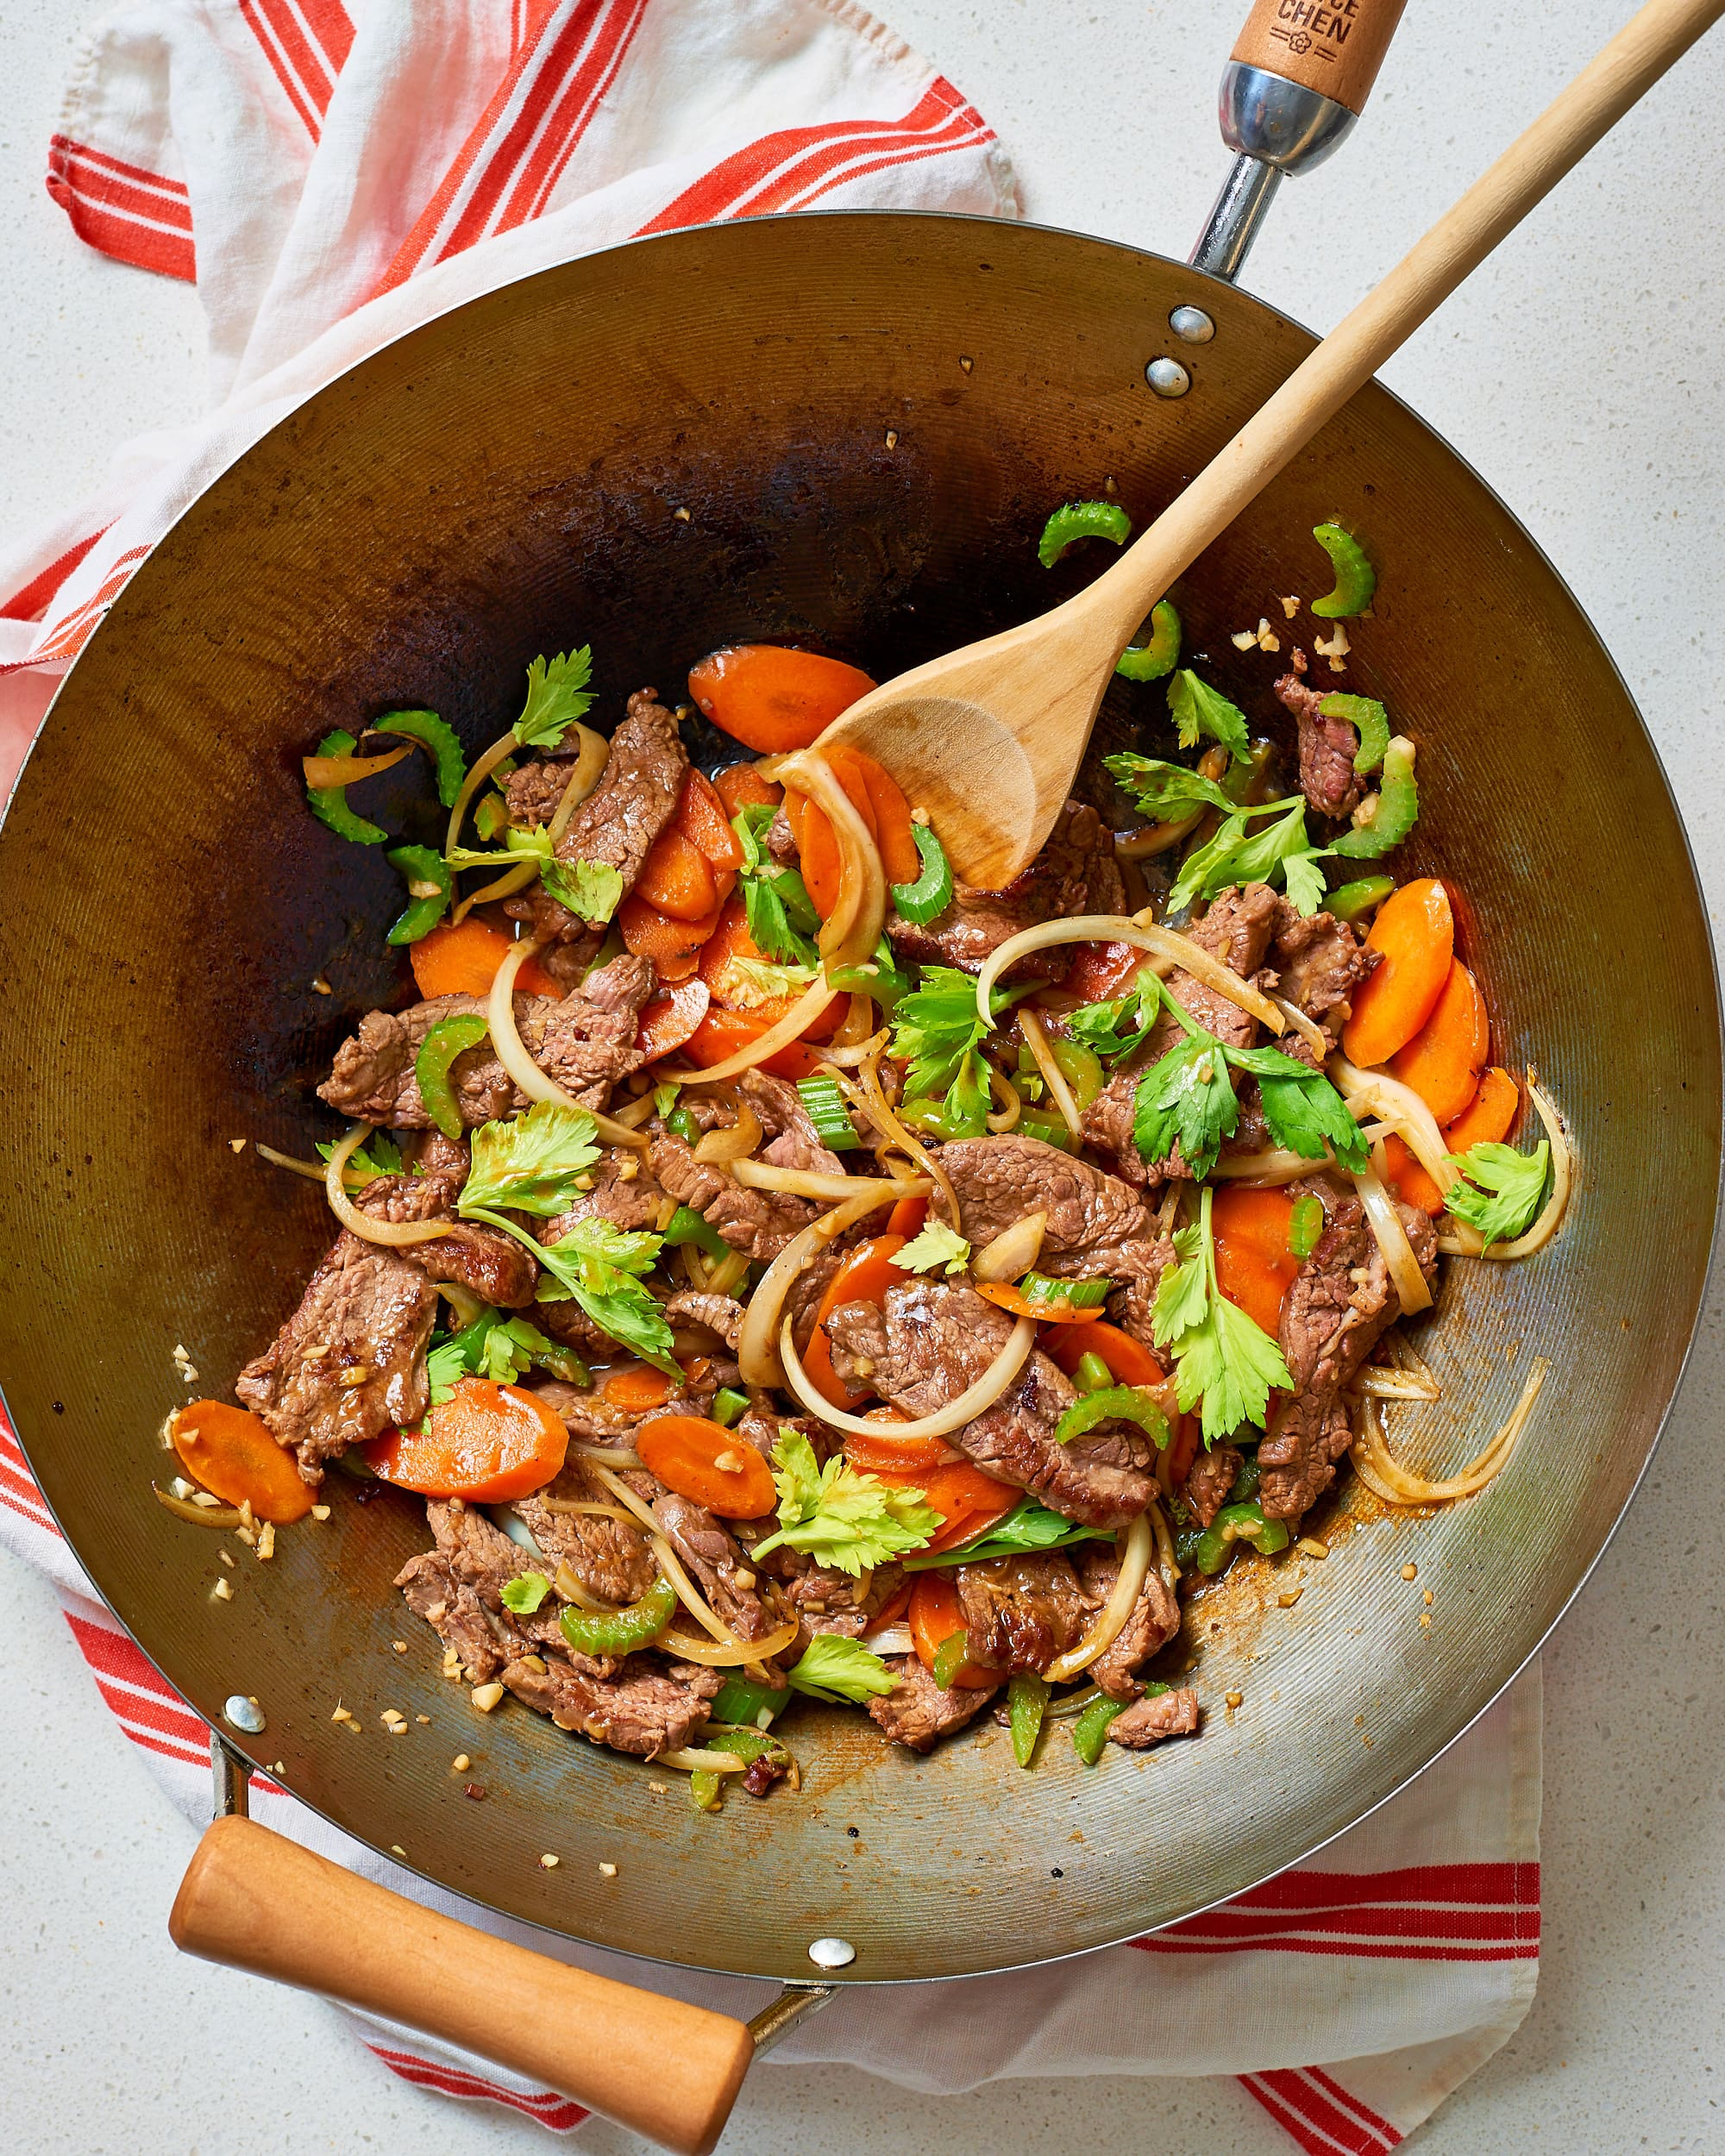 30 Minute Dinner Ideas - Fast Stovetop Recipes